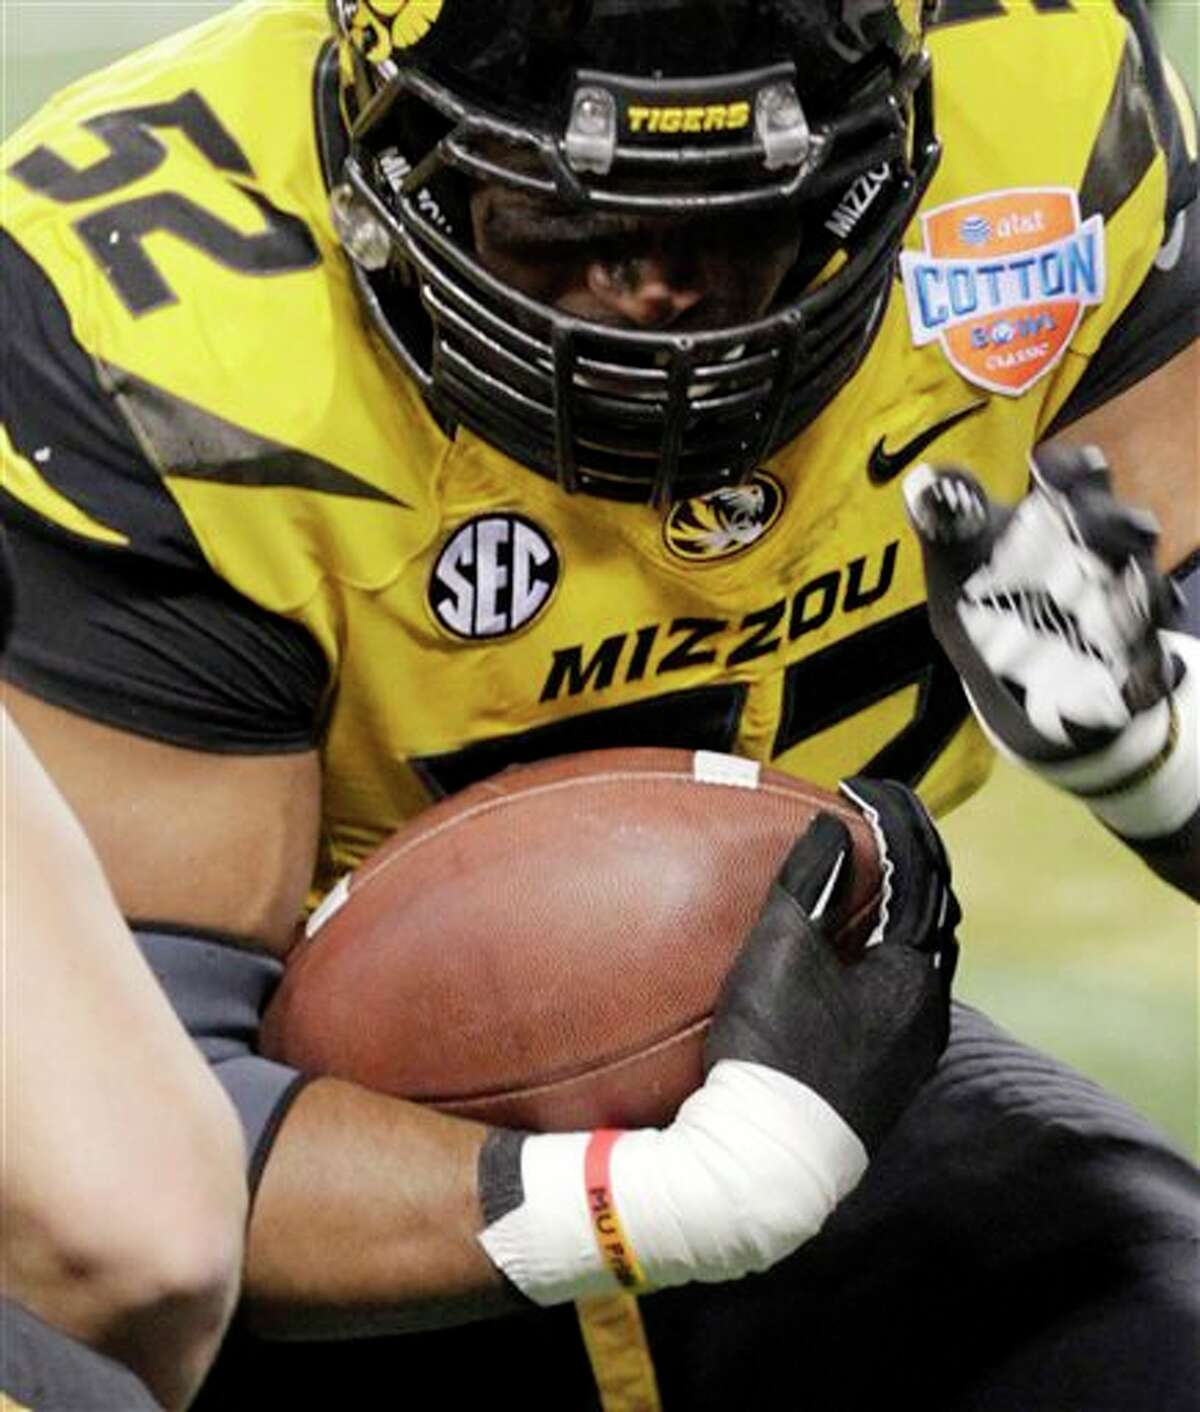 """In this Jan. 3, 2014 photo, Missouri defensive lineman Michael Sam (52) warms up, as he wears an """"MU Pride"""" bracelet made by Triangle Coalition, a student organization for lesbian, gay, bisexual and transgender people, before the Cotton Bowl NCAA college football game against Oklahoma State, in Arlington, Texas. Michael Sam hopes his ability is all that matters, not his sexual orientation. Missouri's All-America defensive end came out to the entire country Sunday night, Feb. 9, 2014, and could become the first openly gay player in America's most popular sport. (AP Photo/Tim Sharp)"""